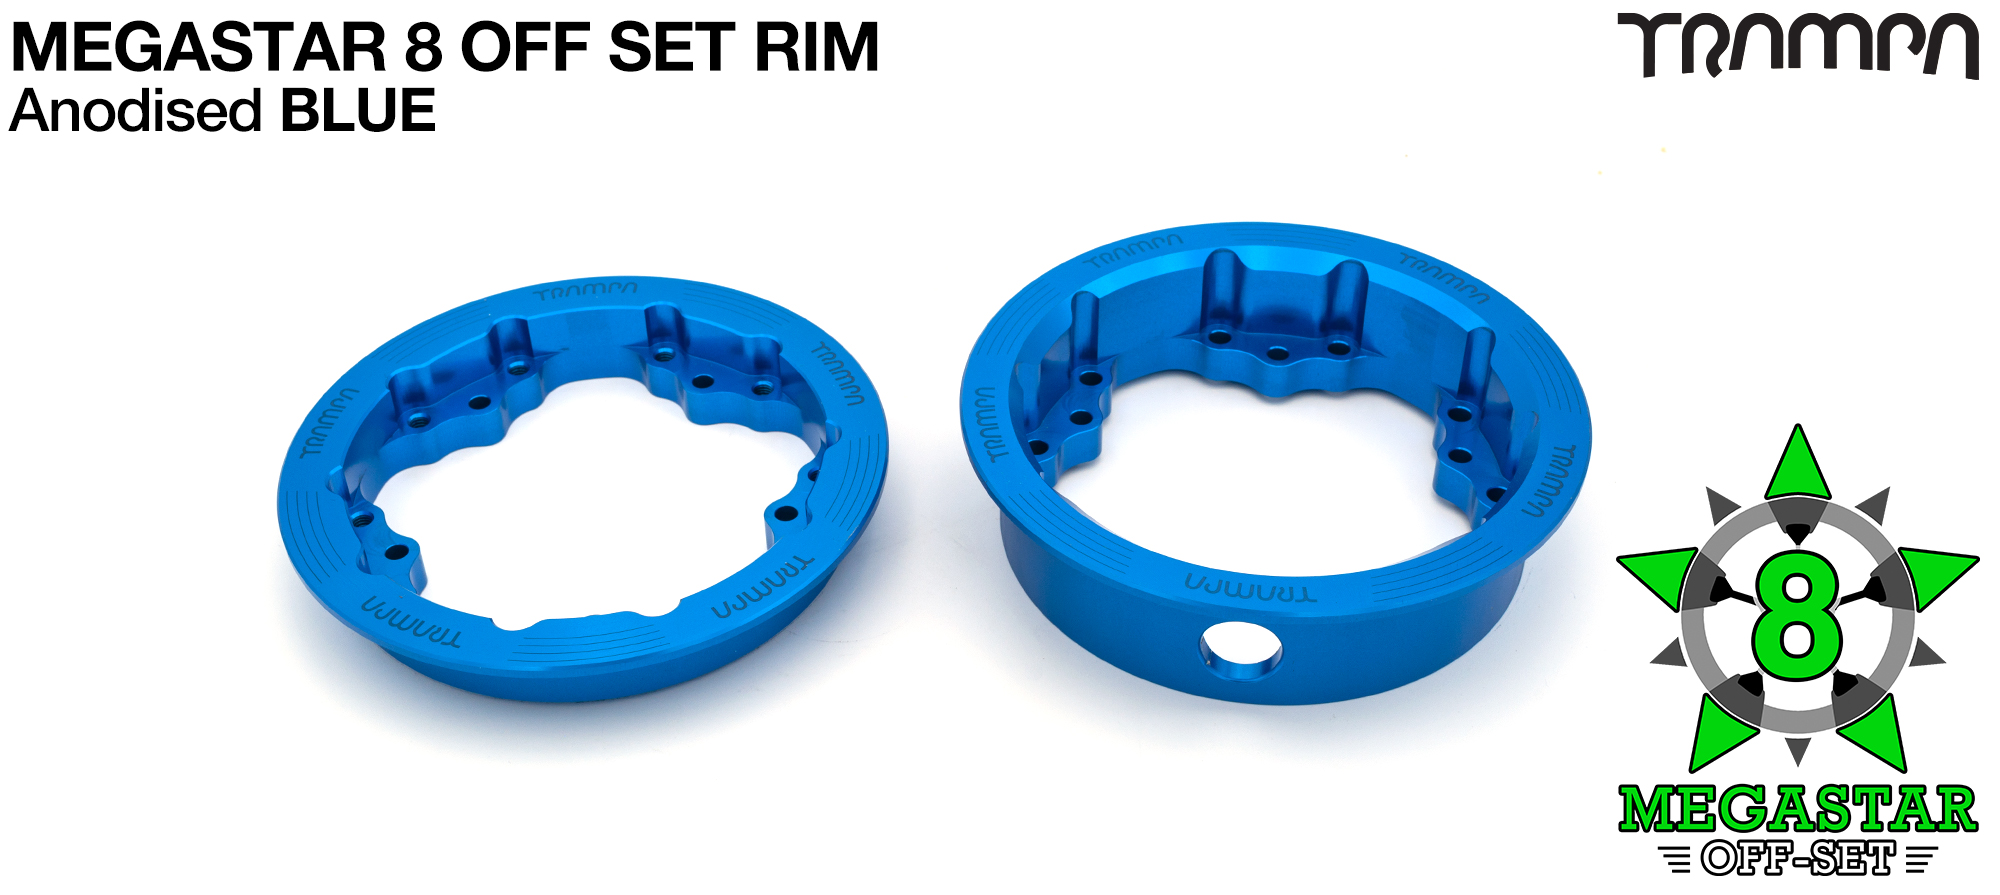 OFF-SET 8 inch MEGASTAR Rims - BLUE